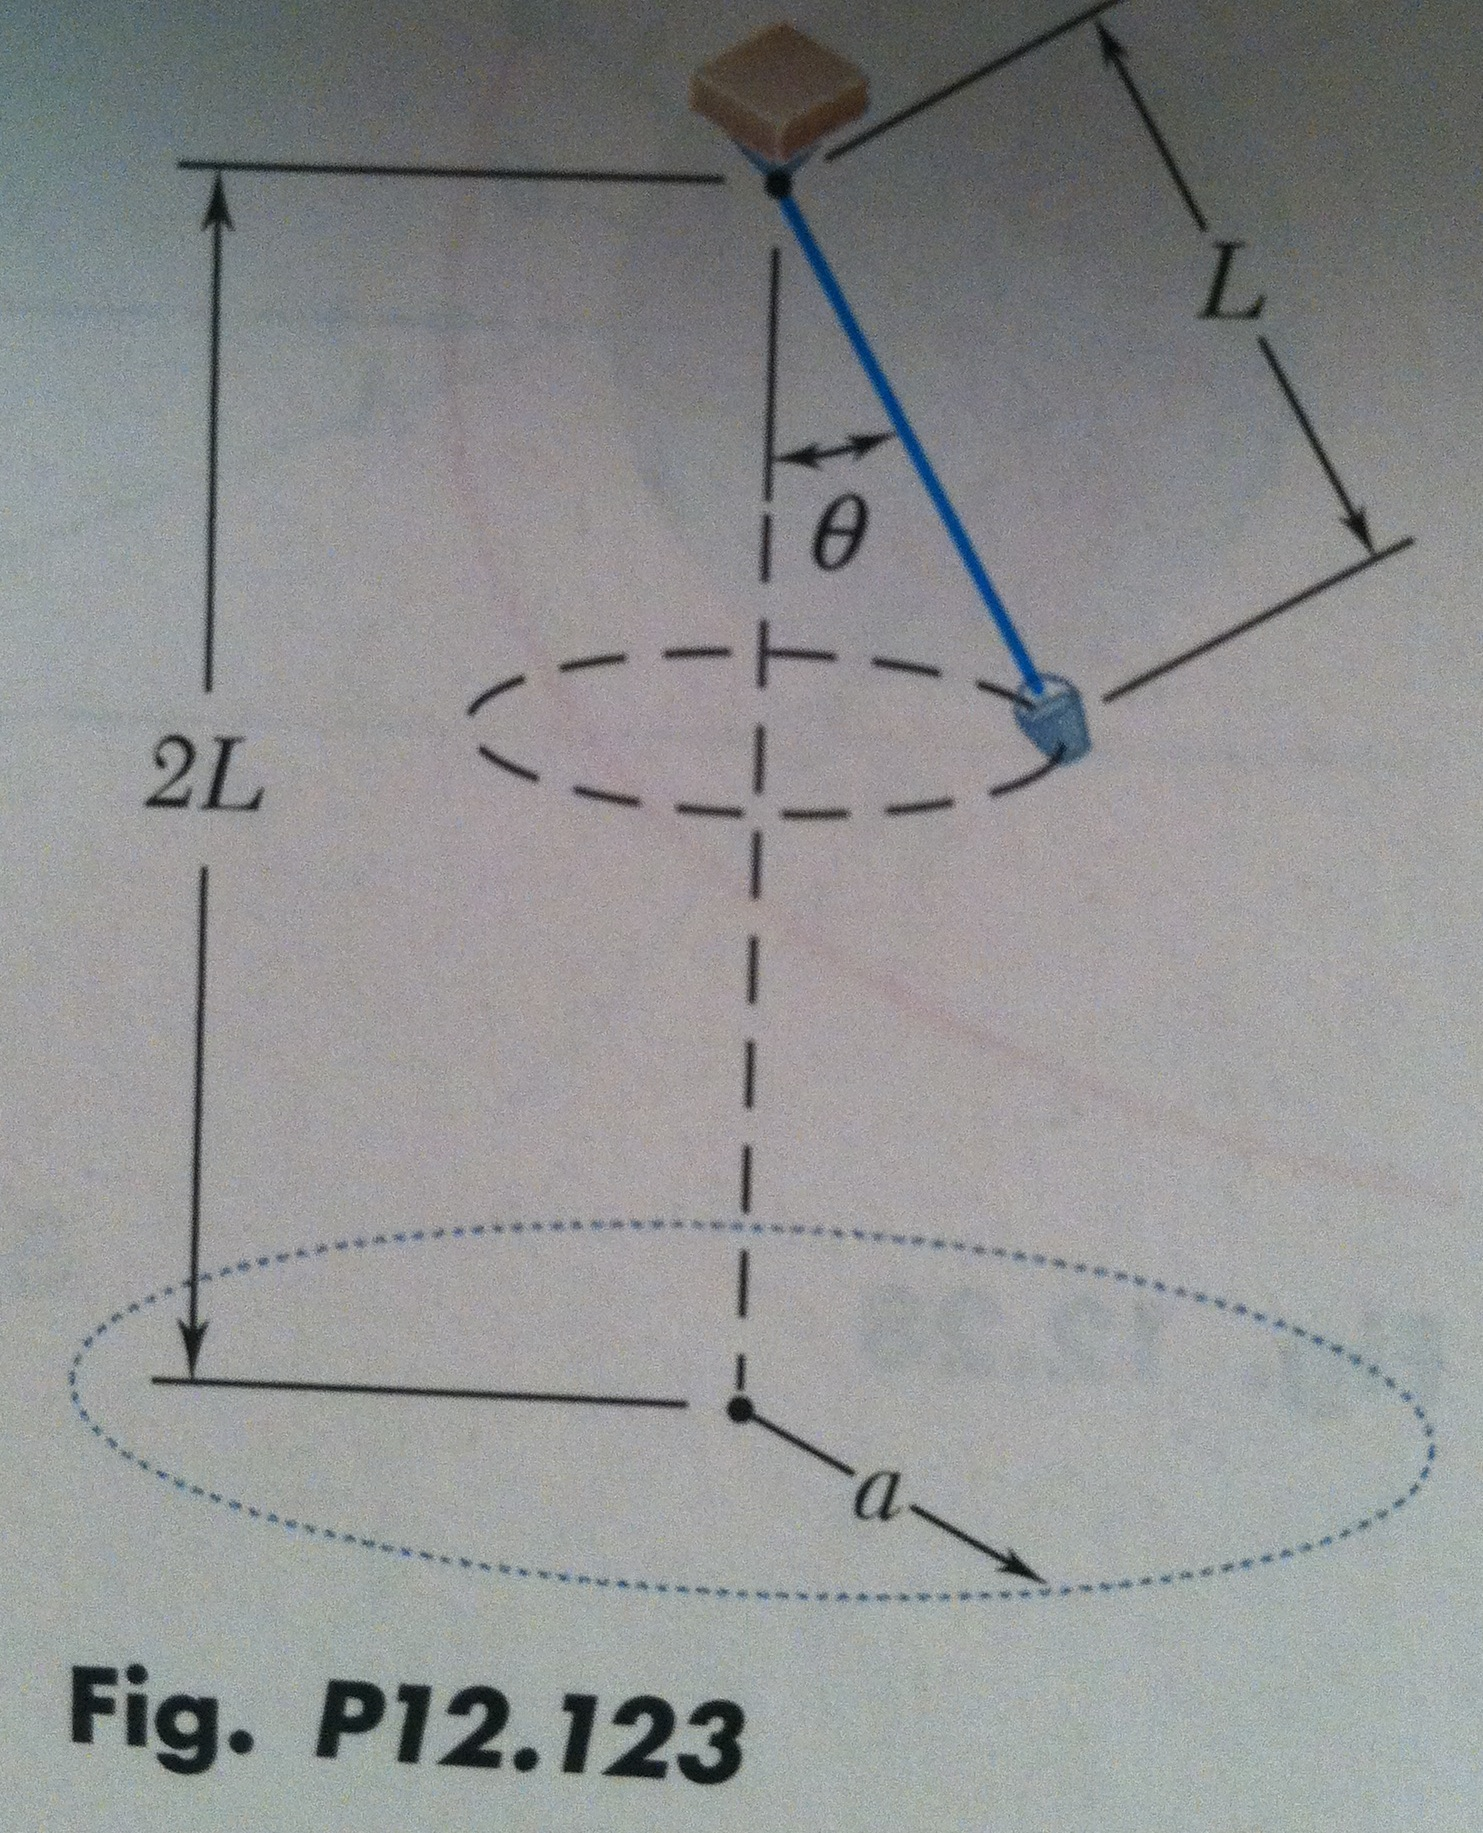 A bucket is attached to a rope of length L = 1.2 m